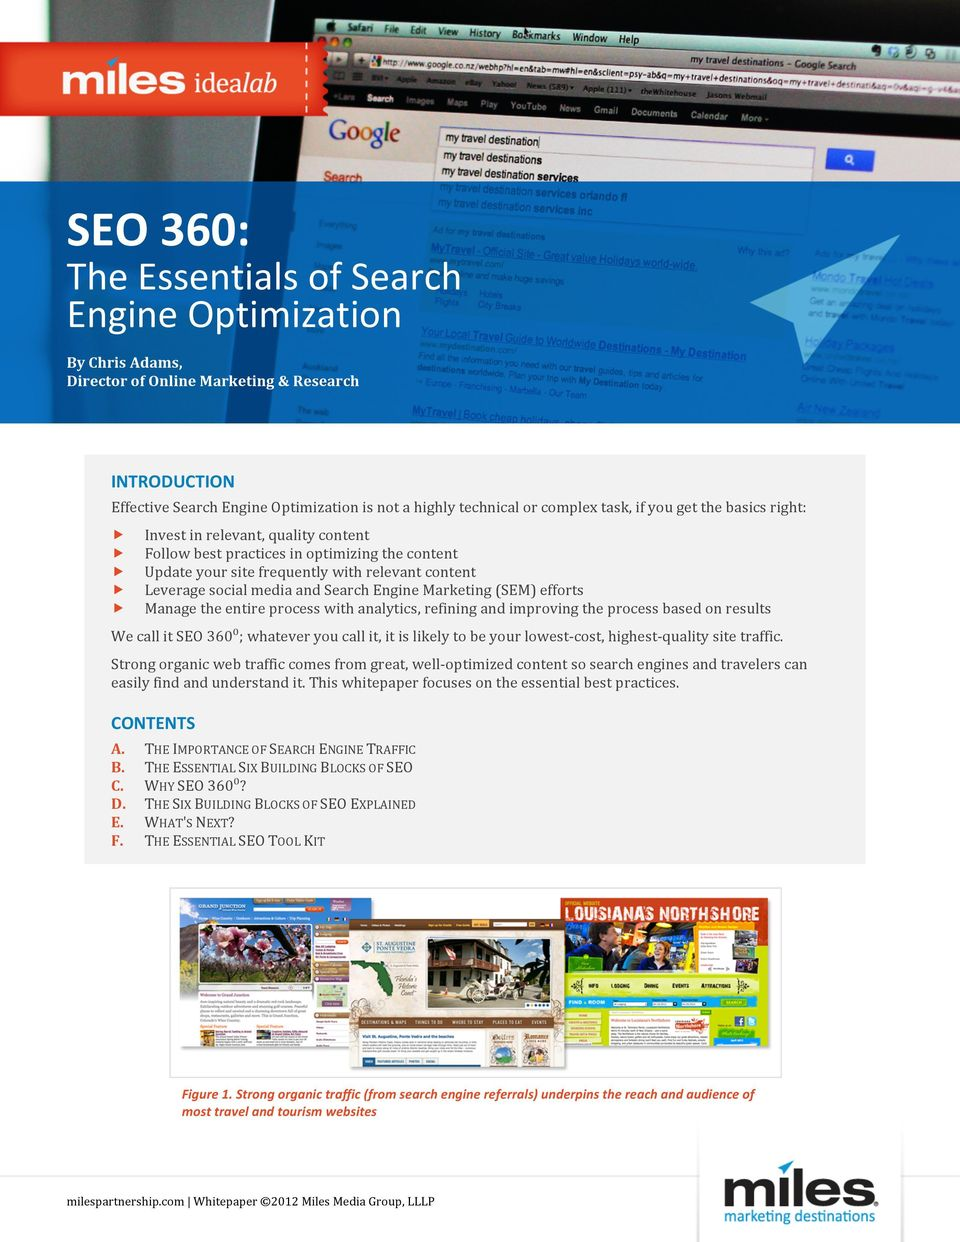 Search Engine Marketing (SEM) efforts Manage the entire process with analytics, refining and improving the process based on results We call it SEO 360⁰; whatever you call it, it is likely to be your